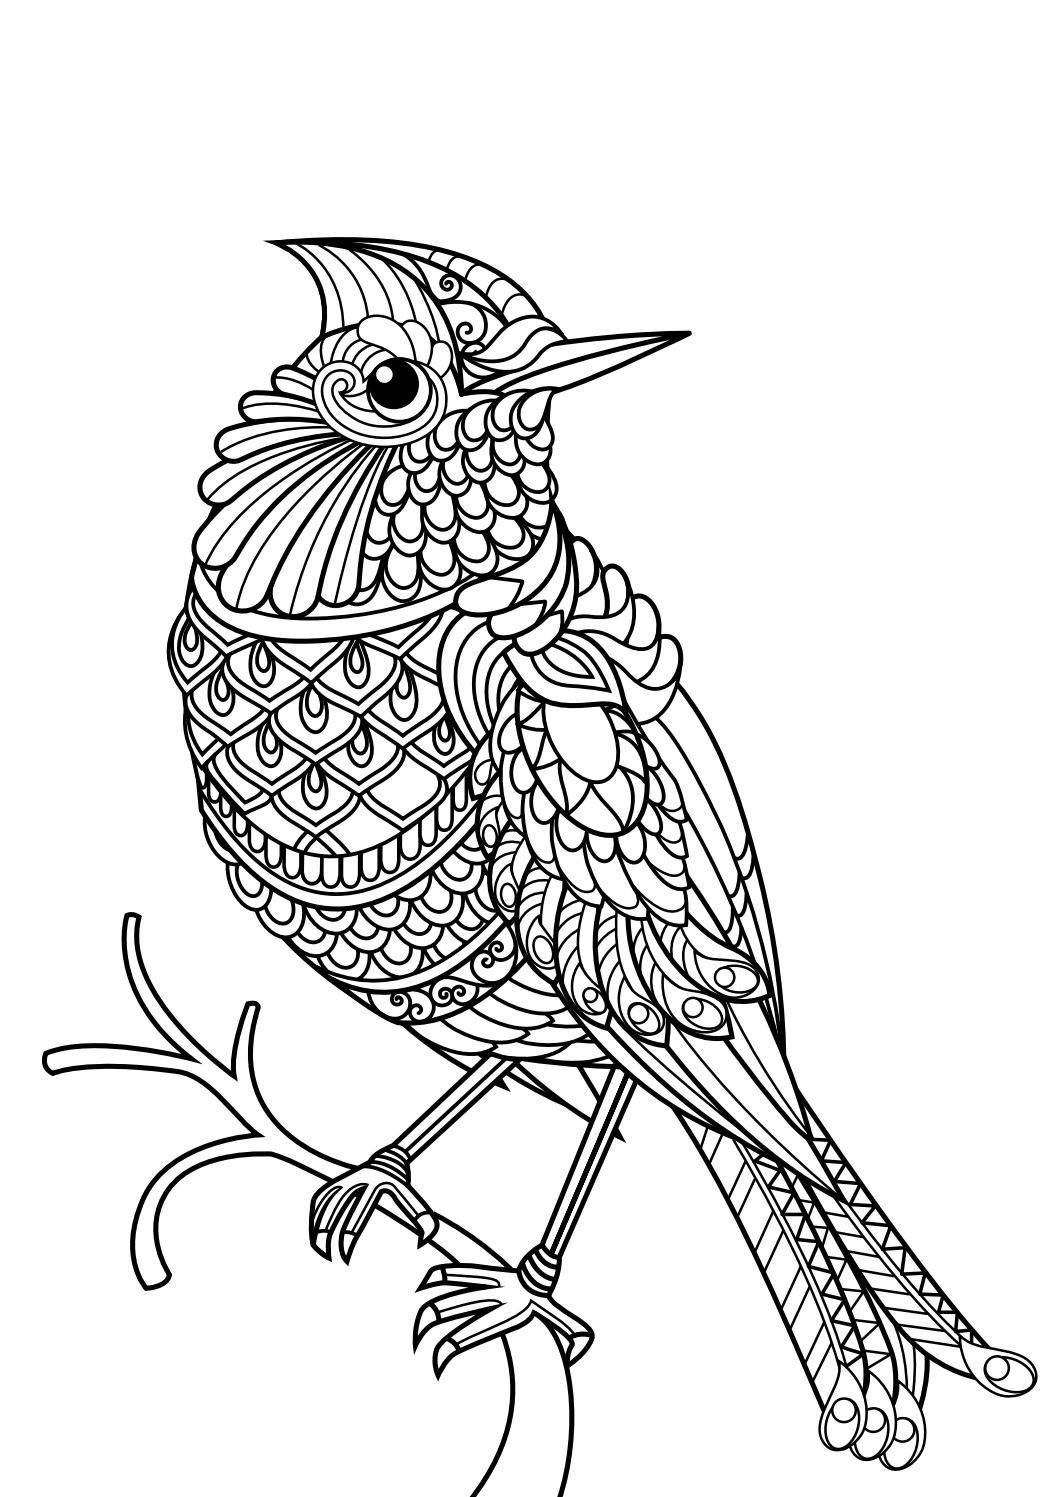 Animal coloring pages pdf | Adult coloring, Dog cat and ... | coloring books for adults animals